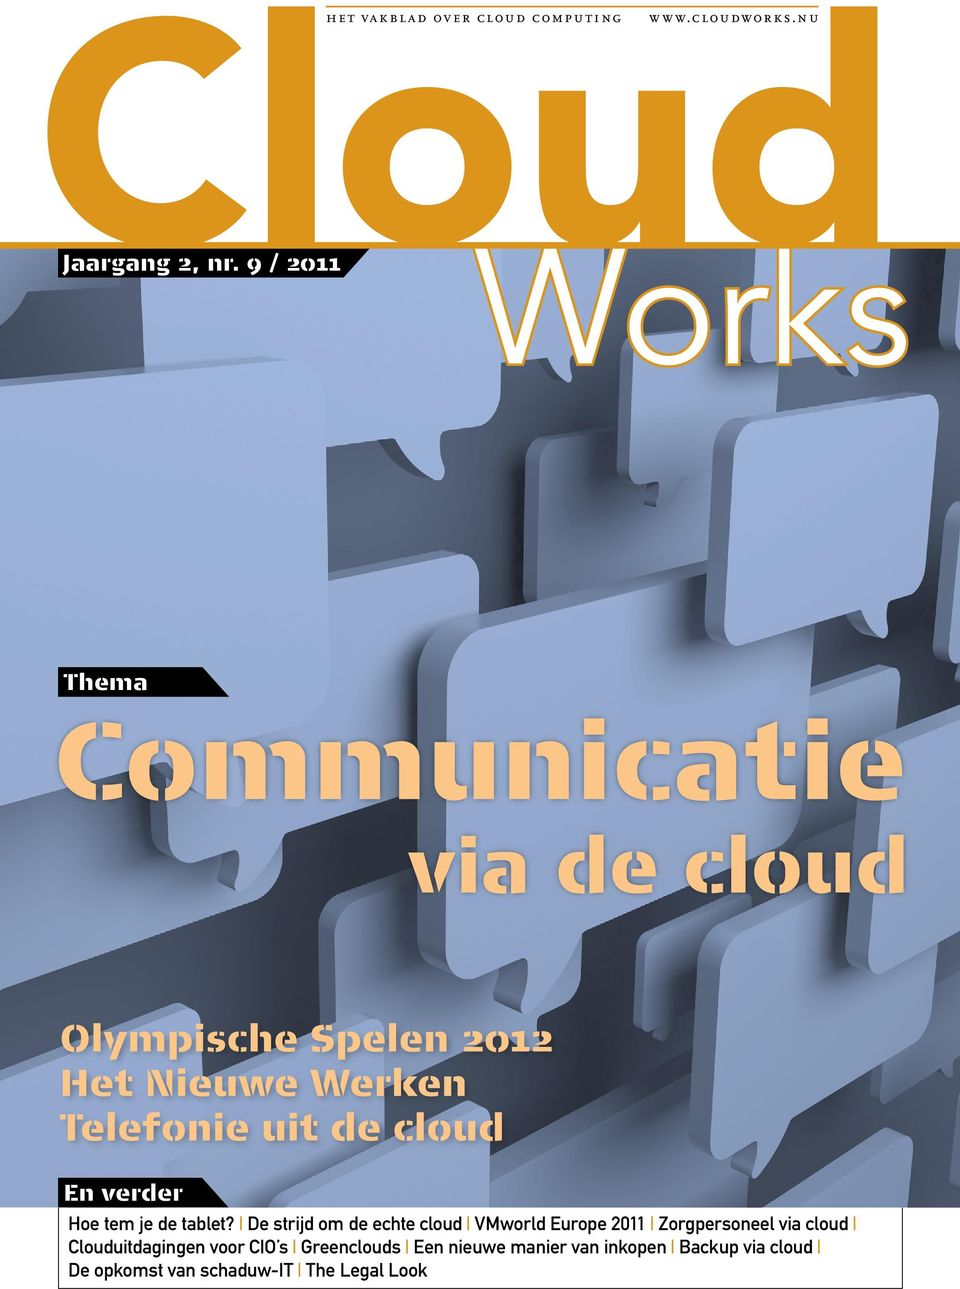 De strijd om de echte cloud VMworld Europe 2011 Zorgpersoneel via cloud